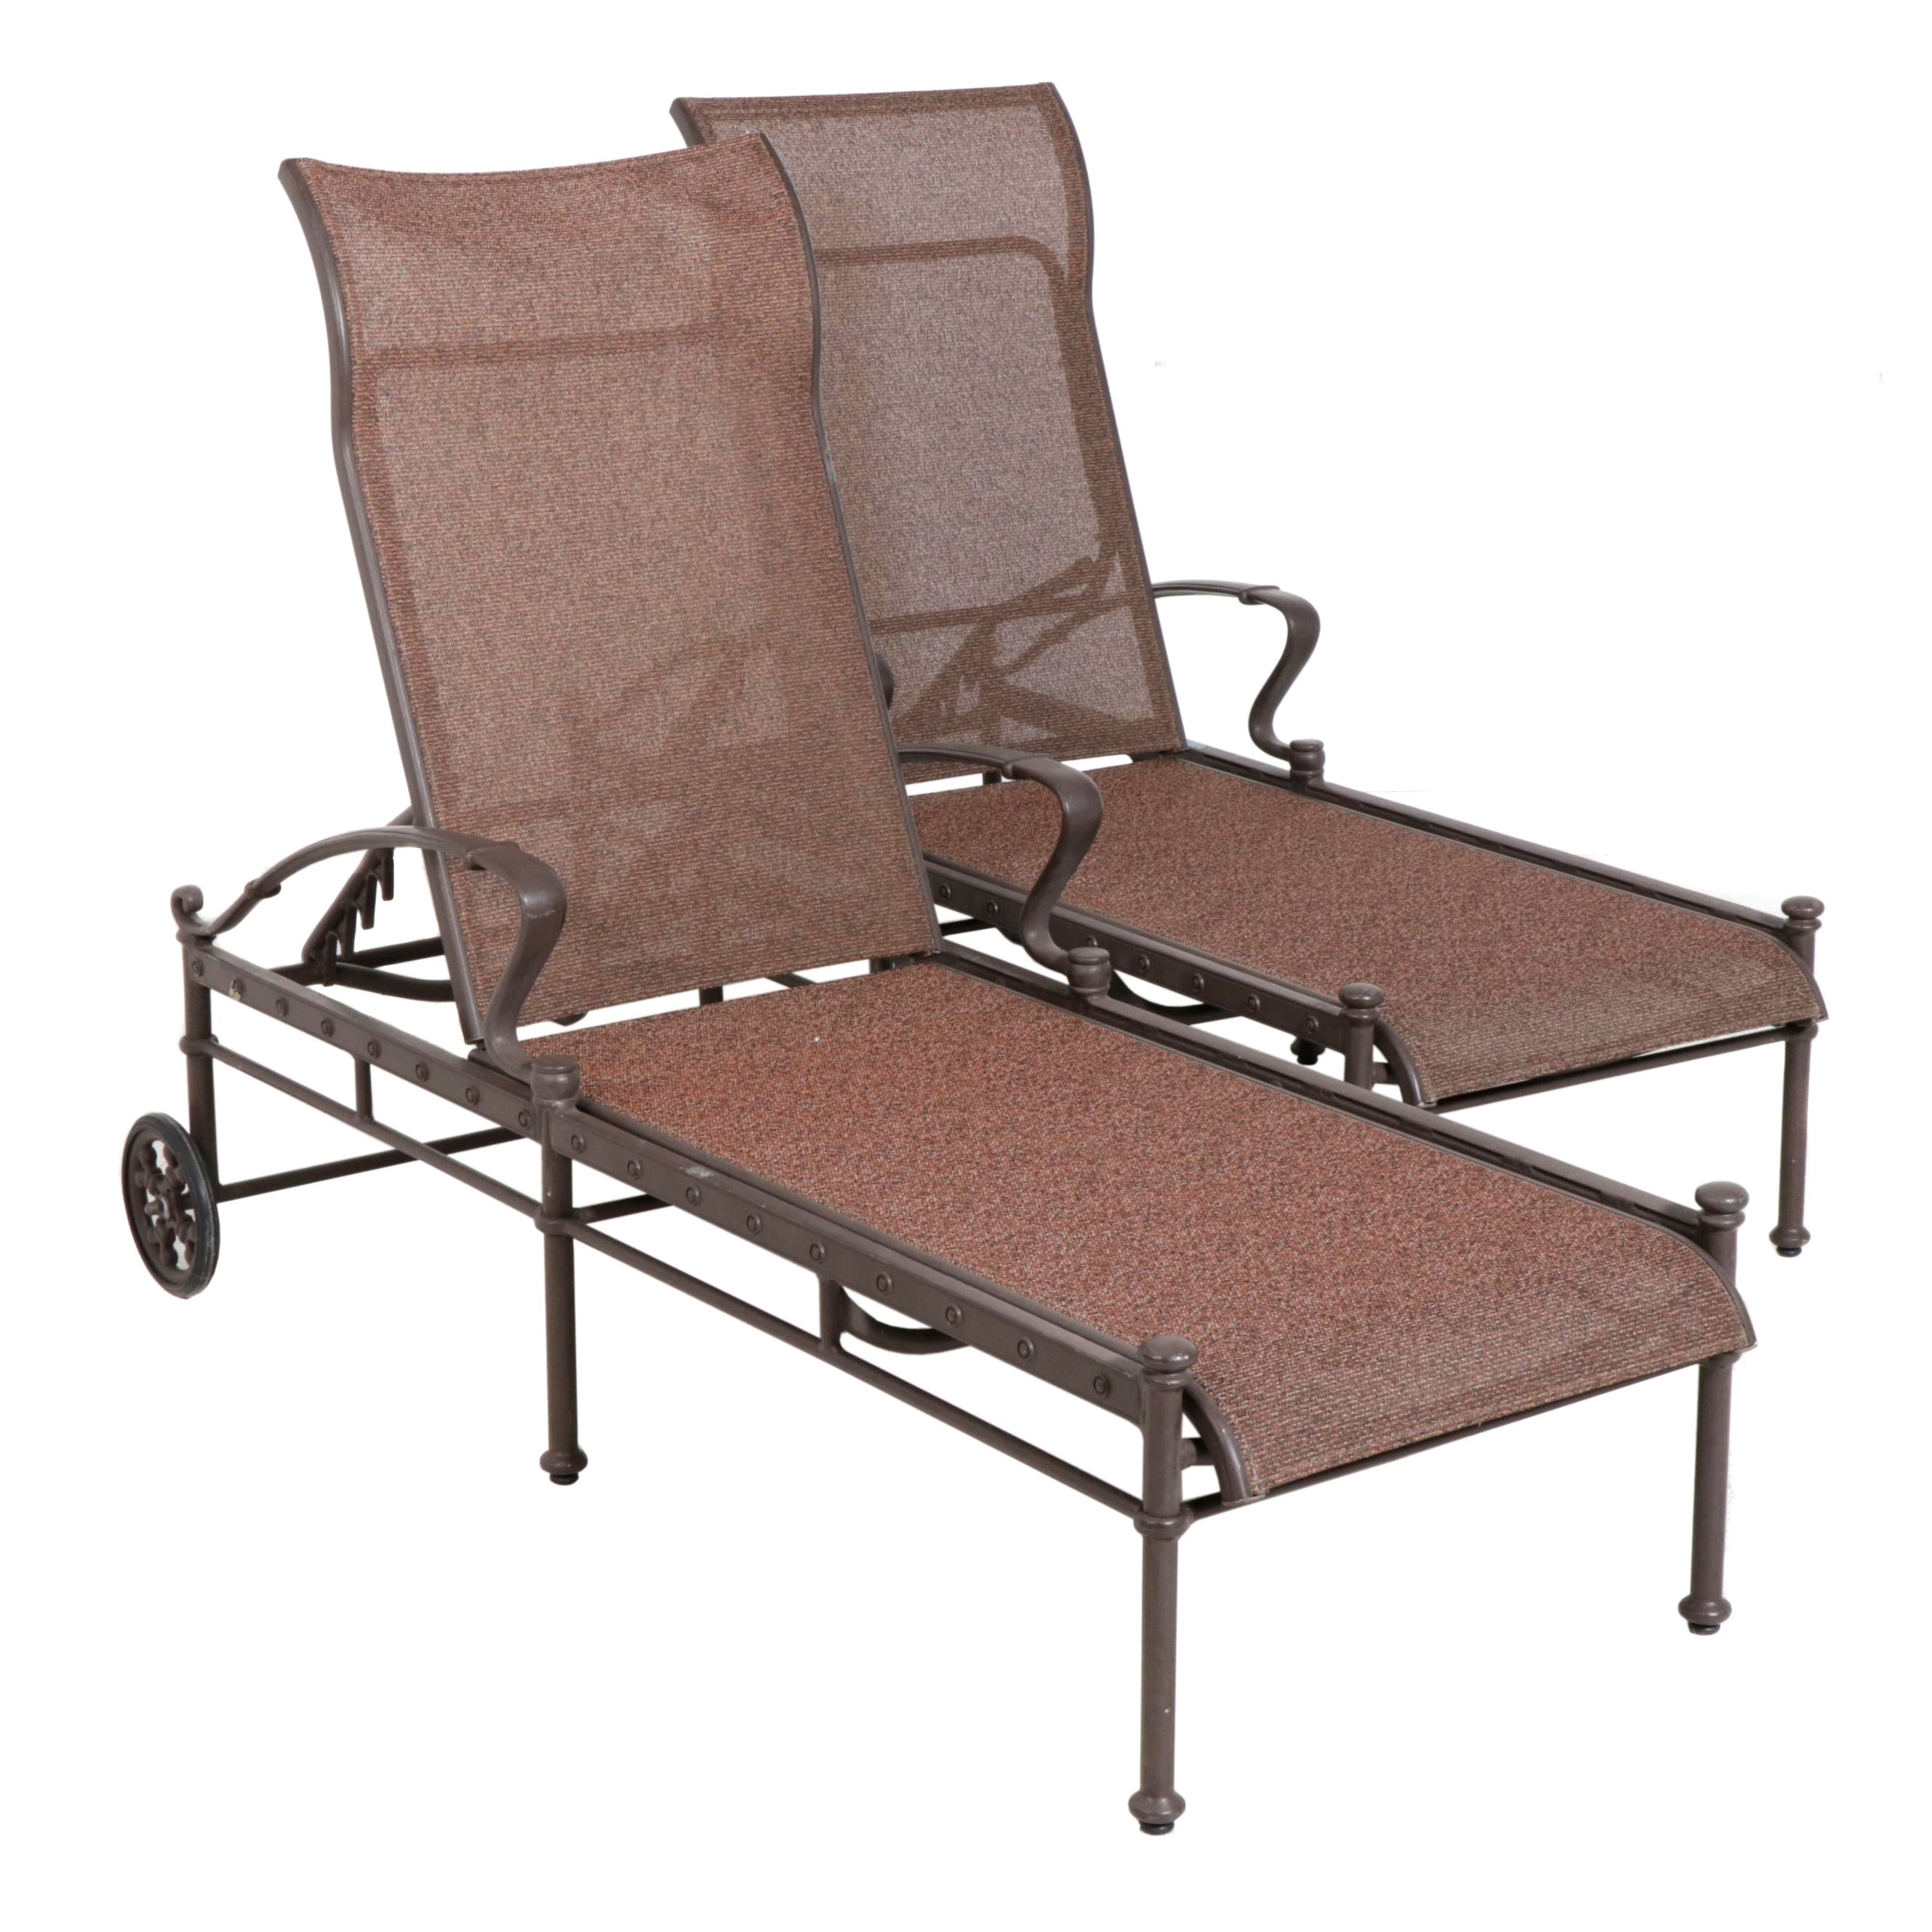 Tropitone Metal Frame Outdoor Loungers, Set of Two